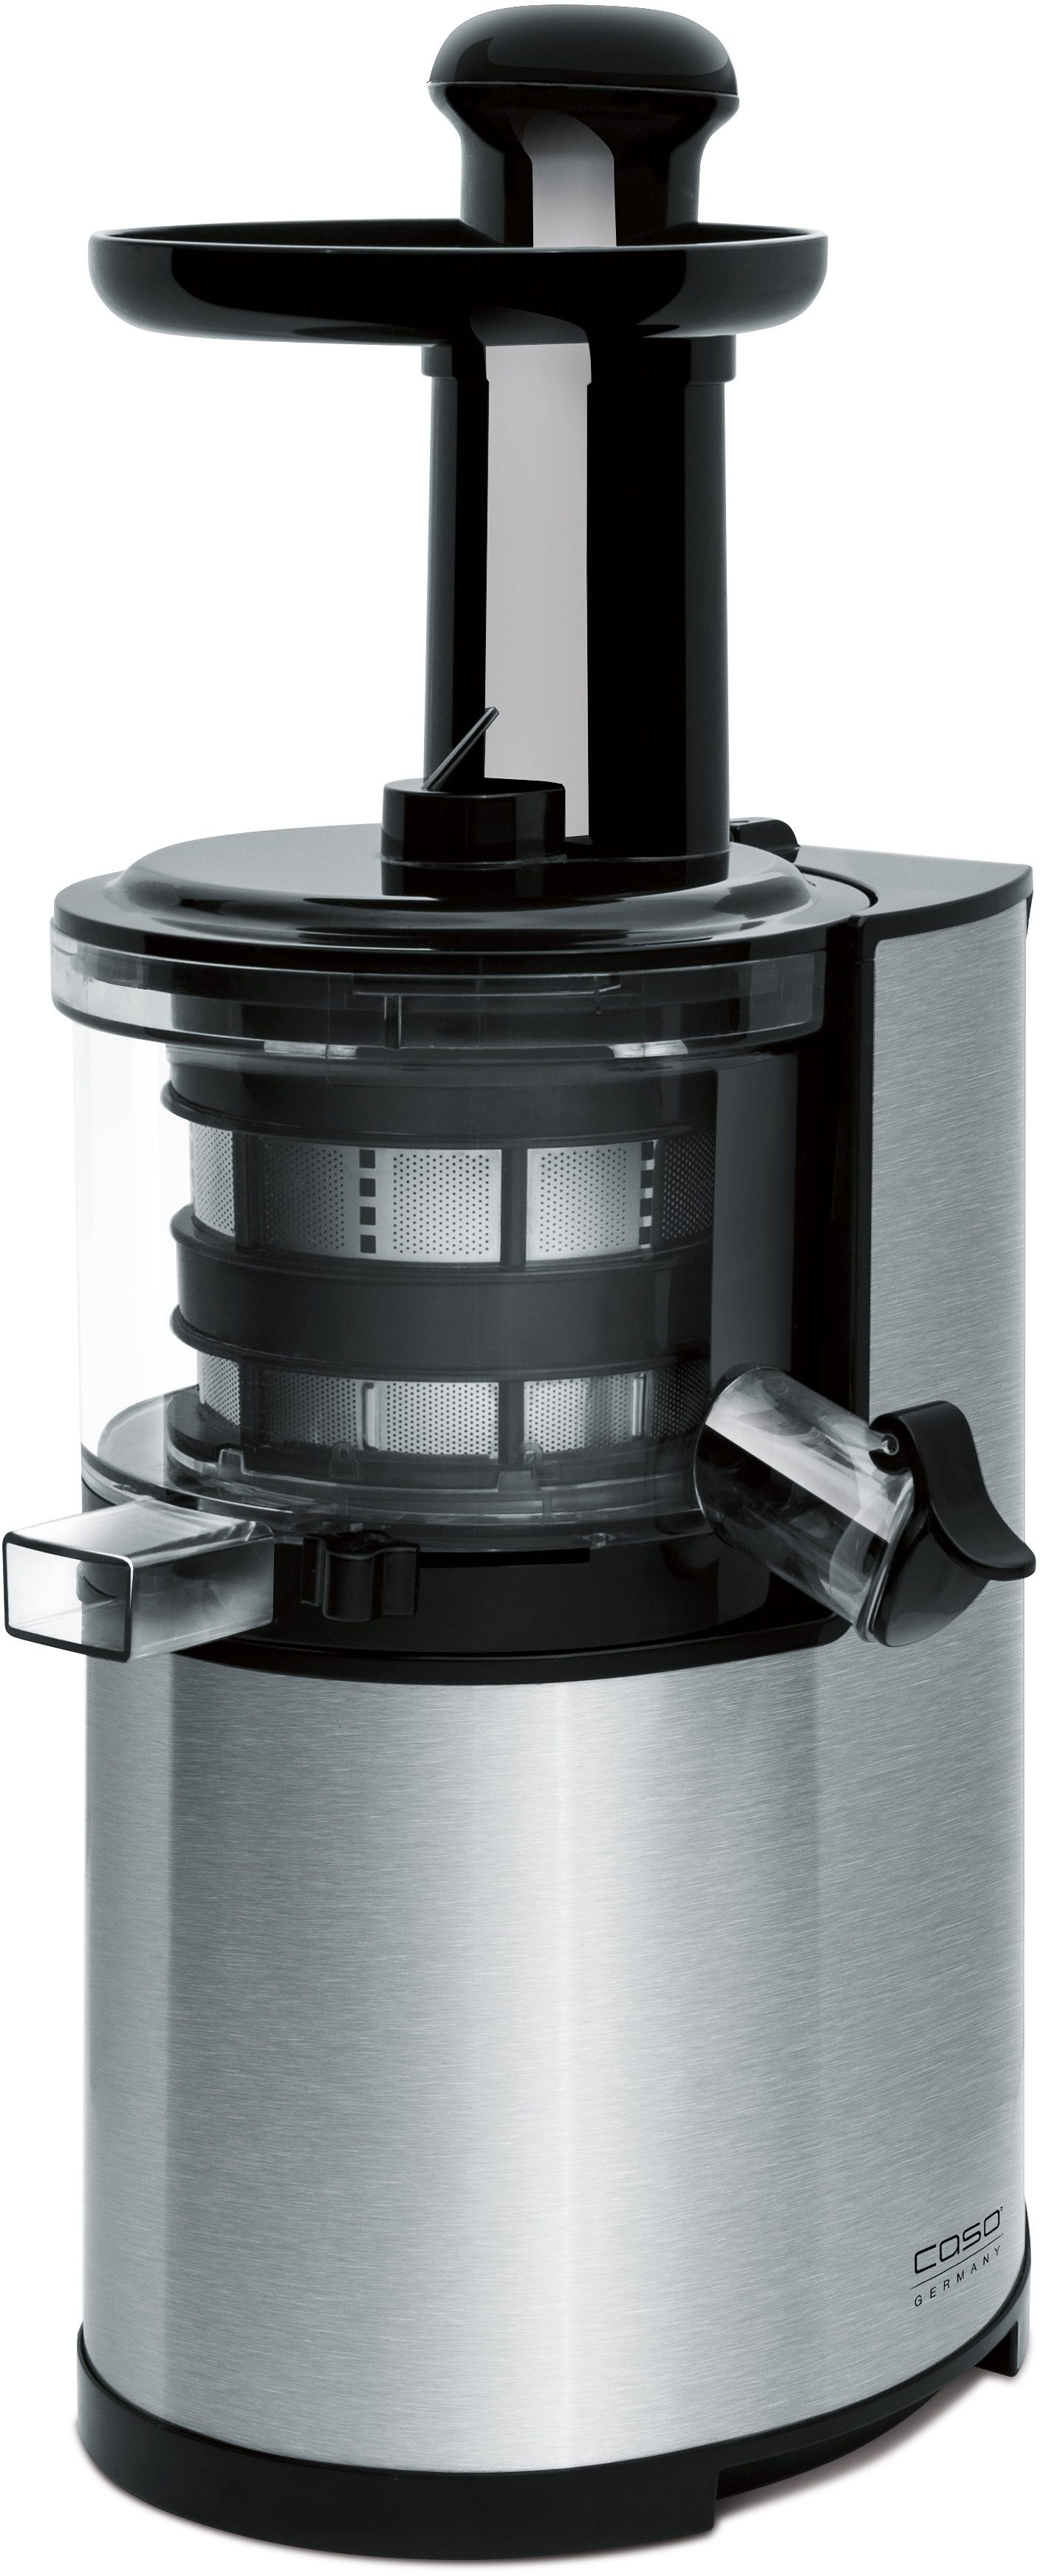 Caso Slow Juicer SJ200 SlowJuicer, 200 W, 200 Watt